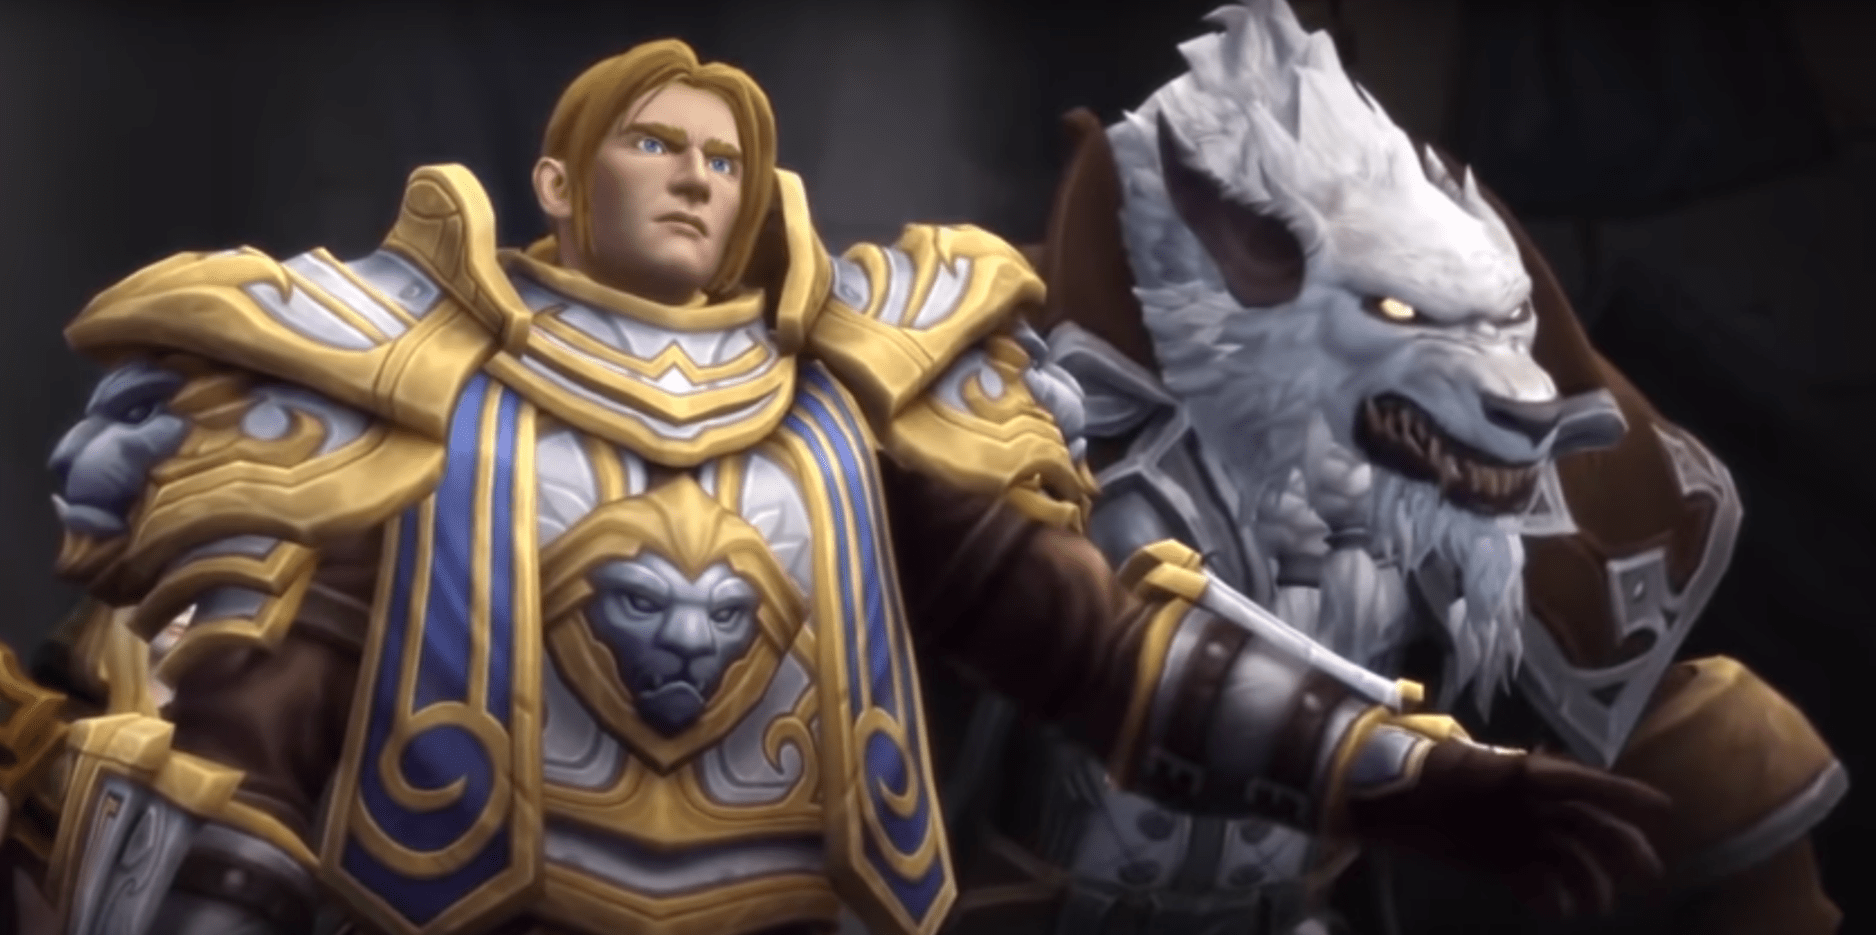 World Of Warcraft: Shadowlands To Possibly Relax Restrictions For Some Movement Abilities As A Buff